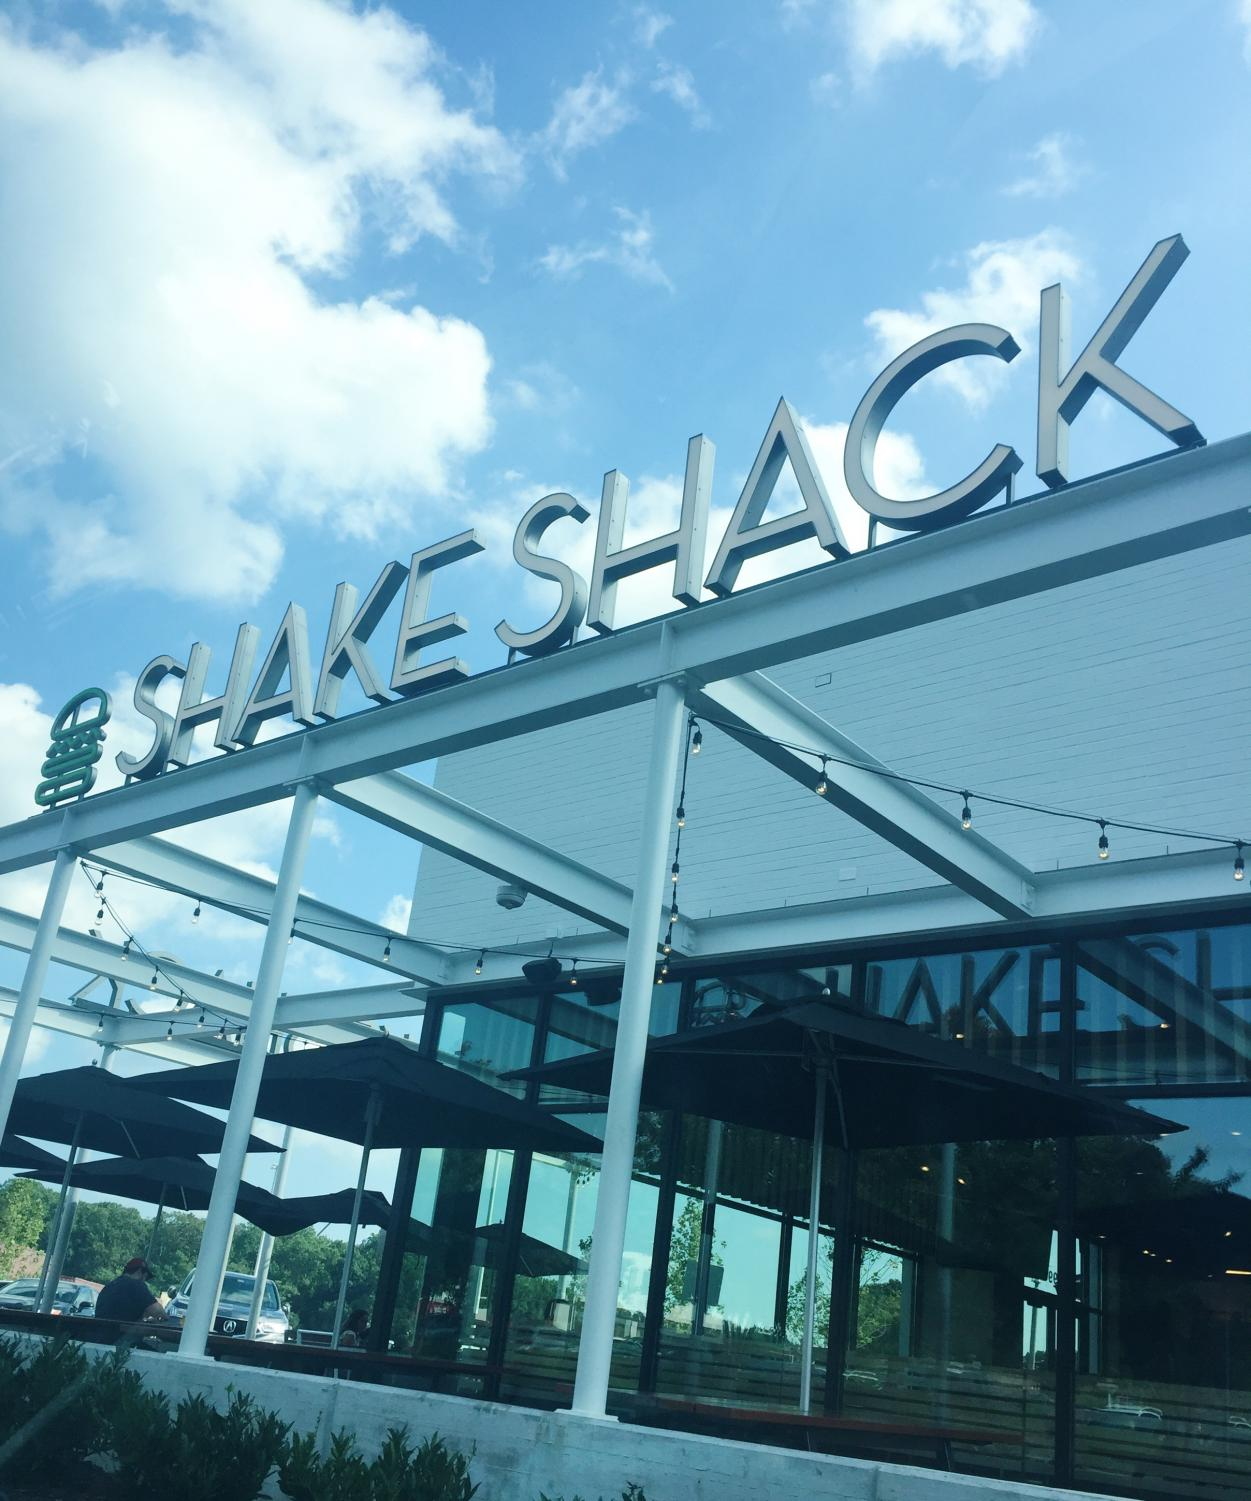 Shake shack opened up in Cabin John Shopping center Sept. 6. Since opening day, hundreds of CHS students and members of the CHS community have opted for a burger in leu of other food options in the center.